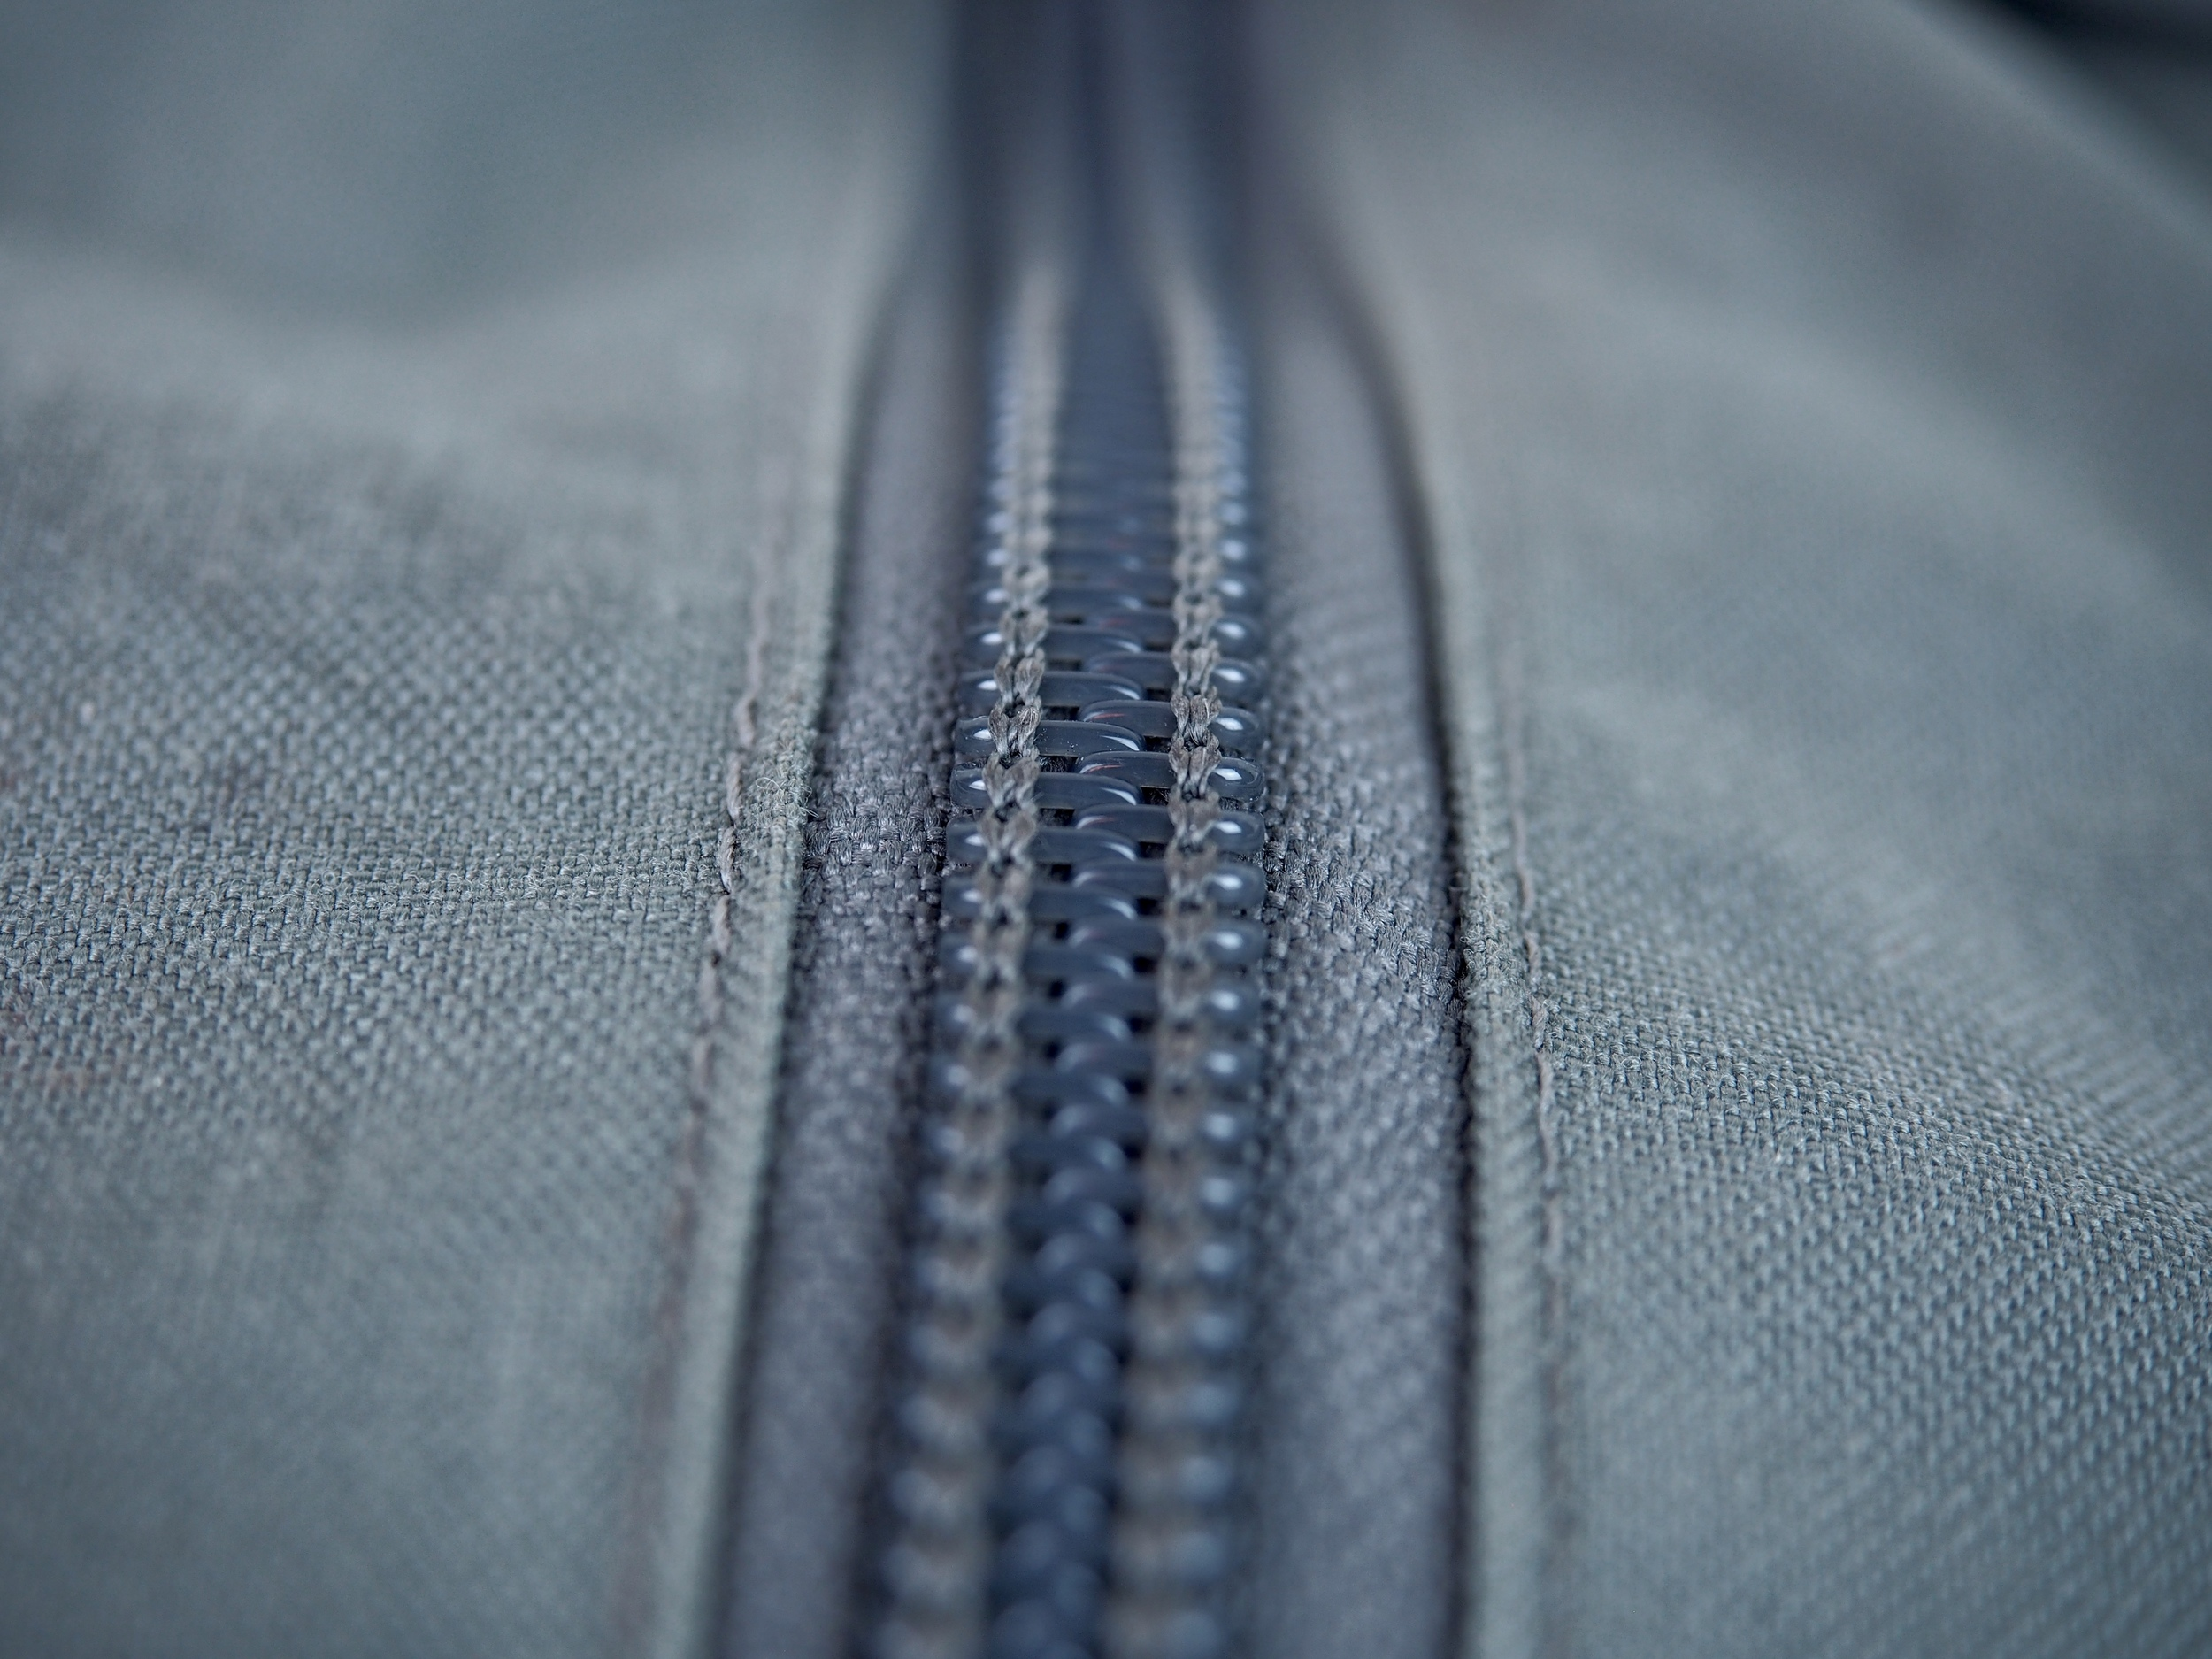 Quality zippers. I hate zippers that stick!